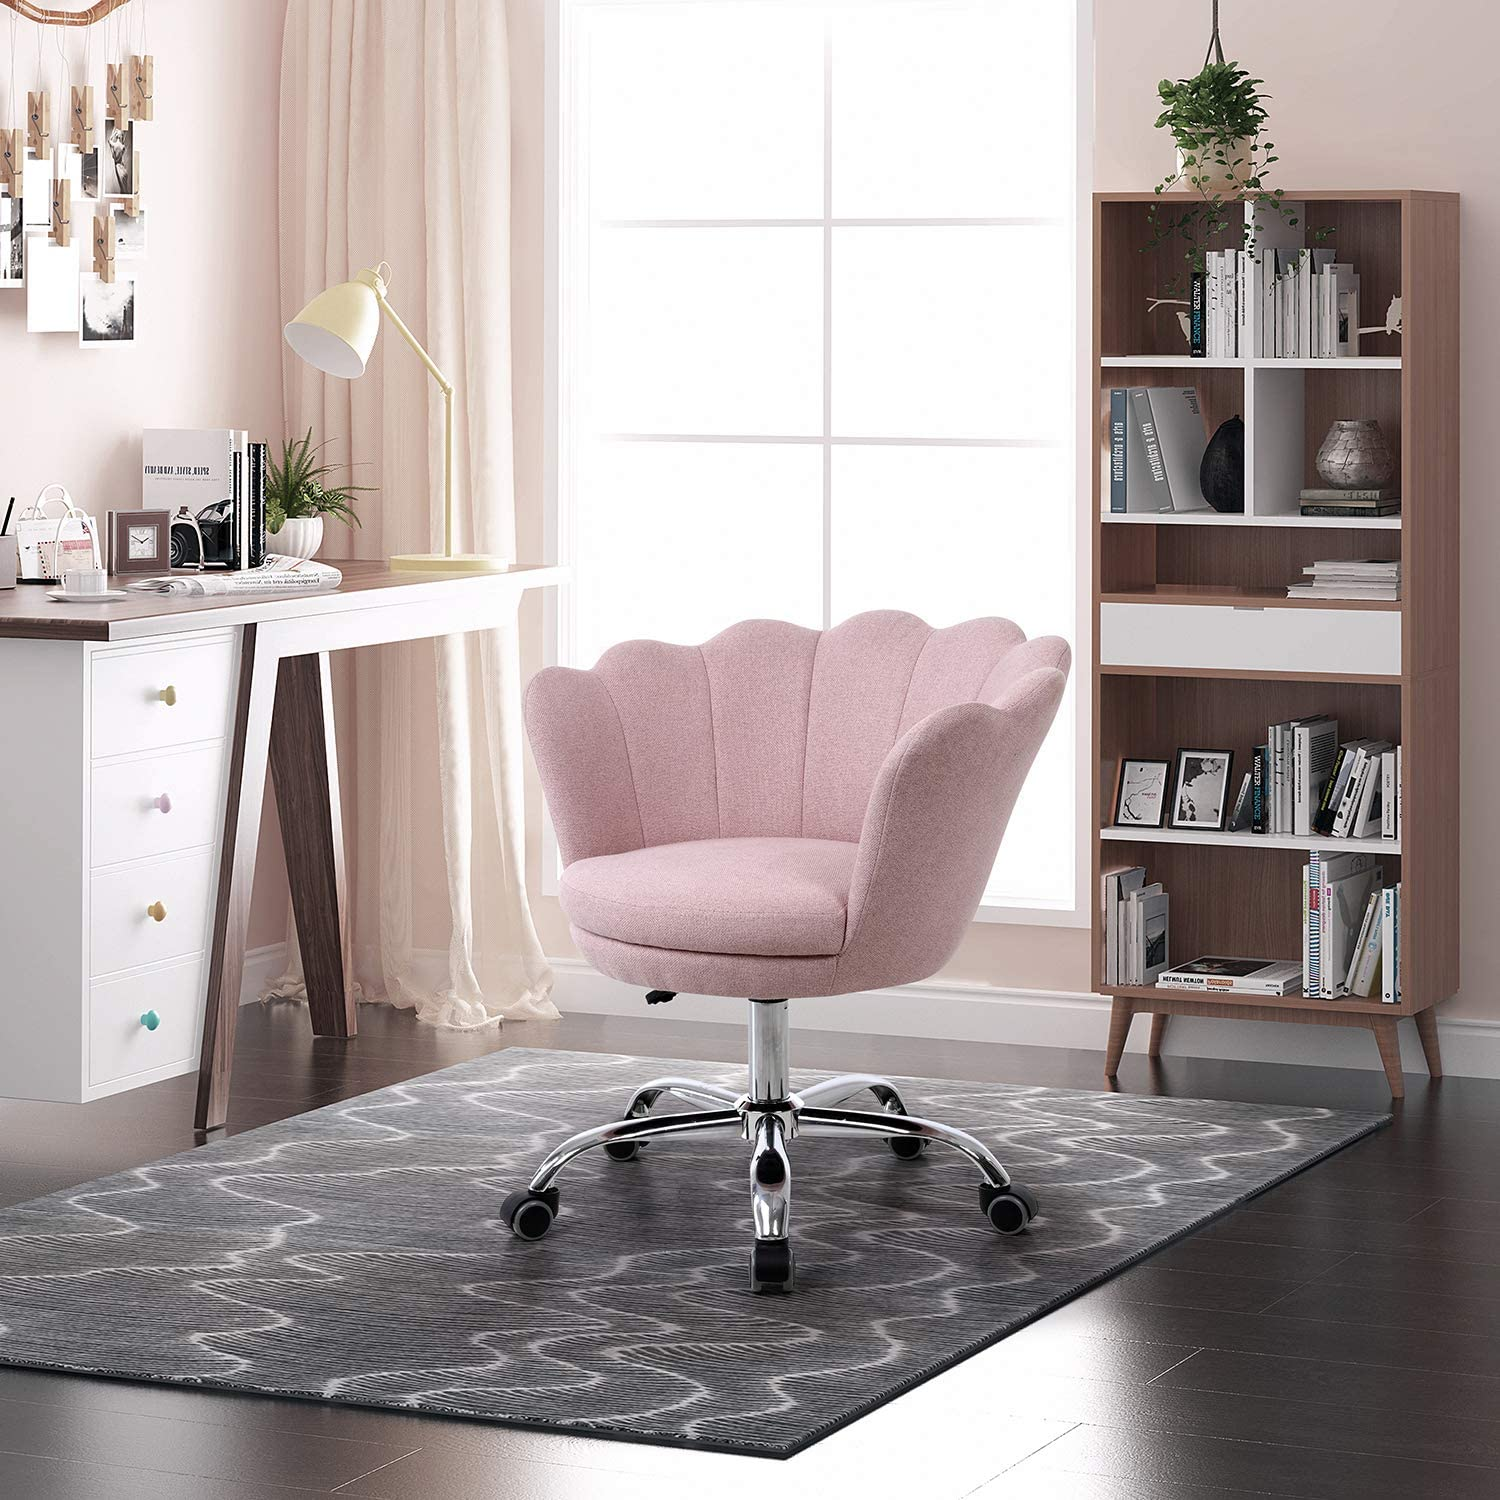 Henf Linen Fabric Accent Chair, Living Room Swivel Shell Chairs Home Office Desk Chair Modern Upholstered Vanity Chair with Wheels for Bedroom Makeup (Pink)